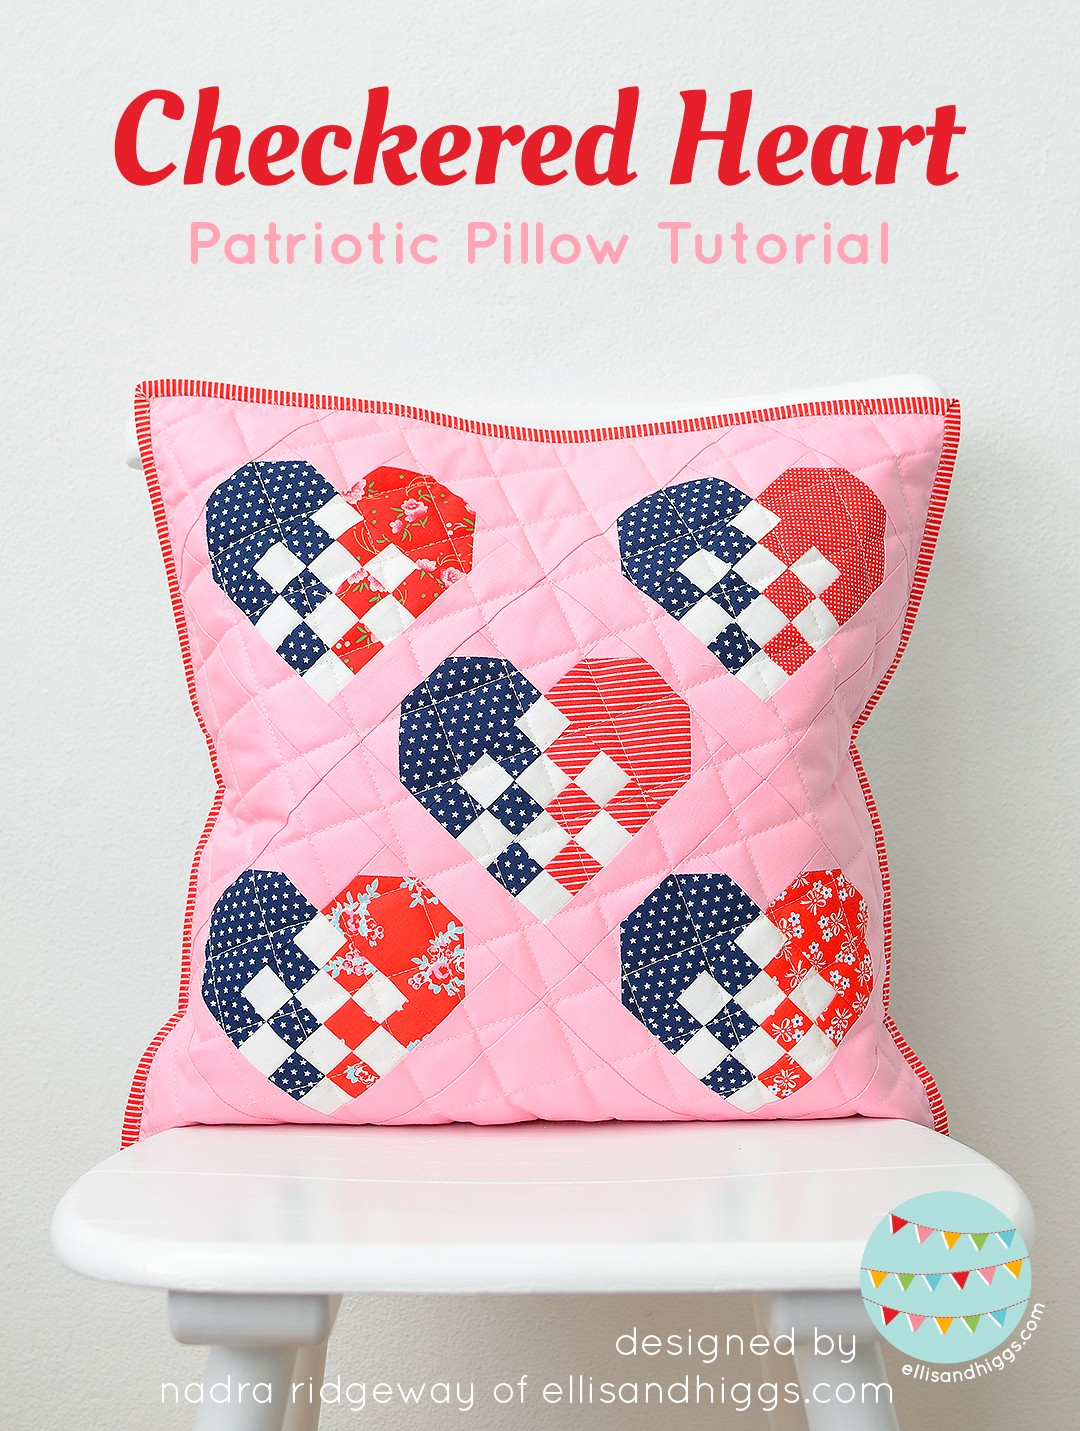 Patriotic pillow with hearts in red, white and blue